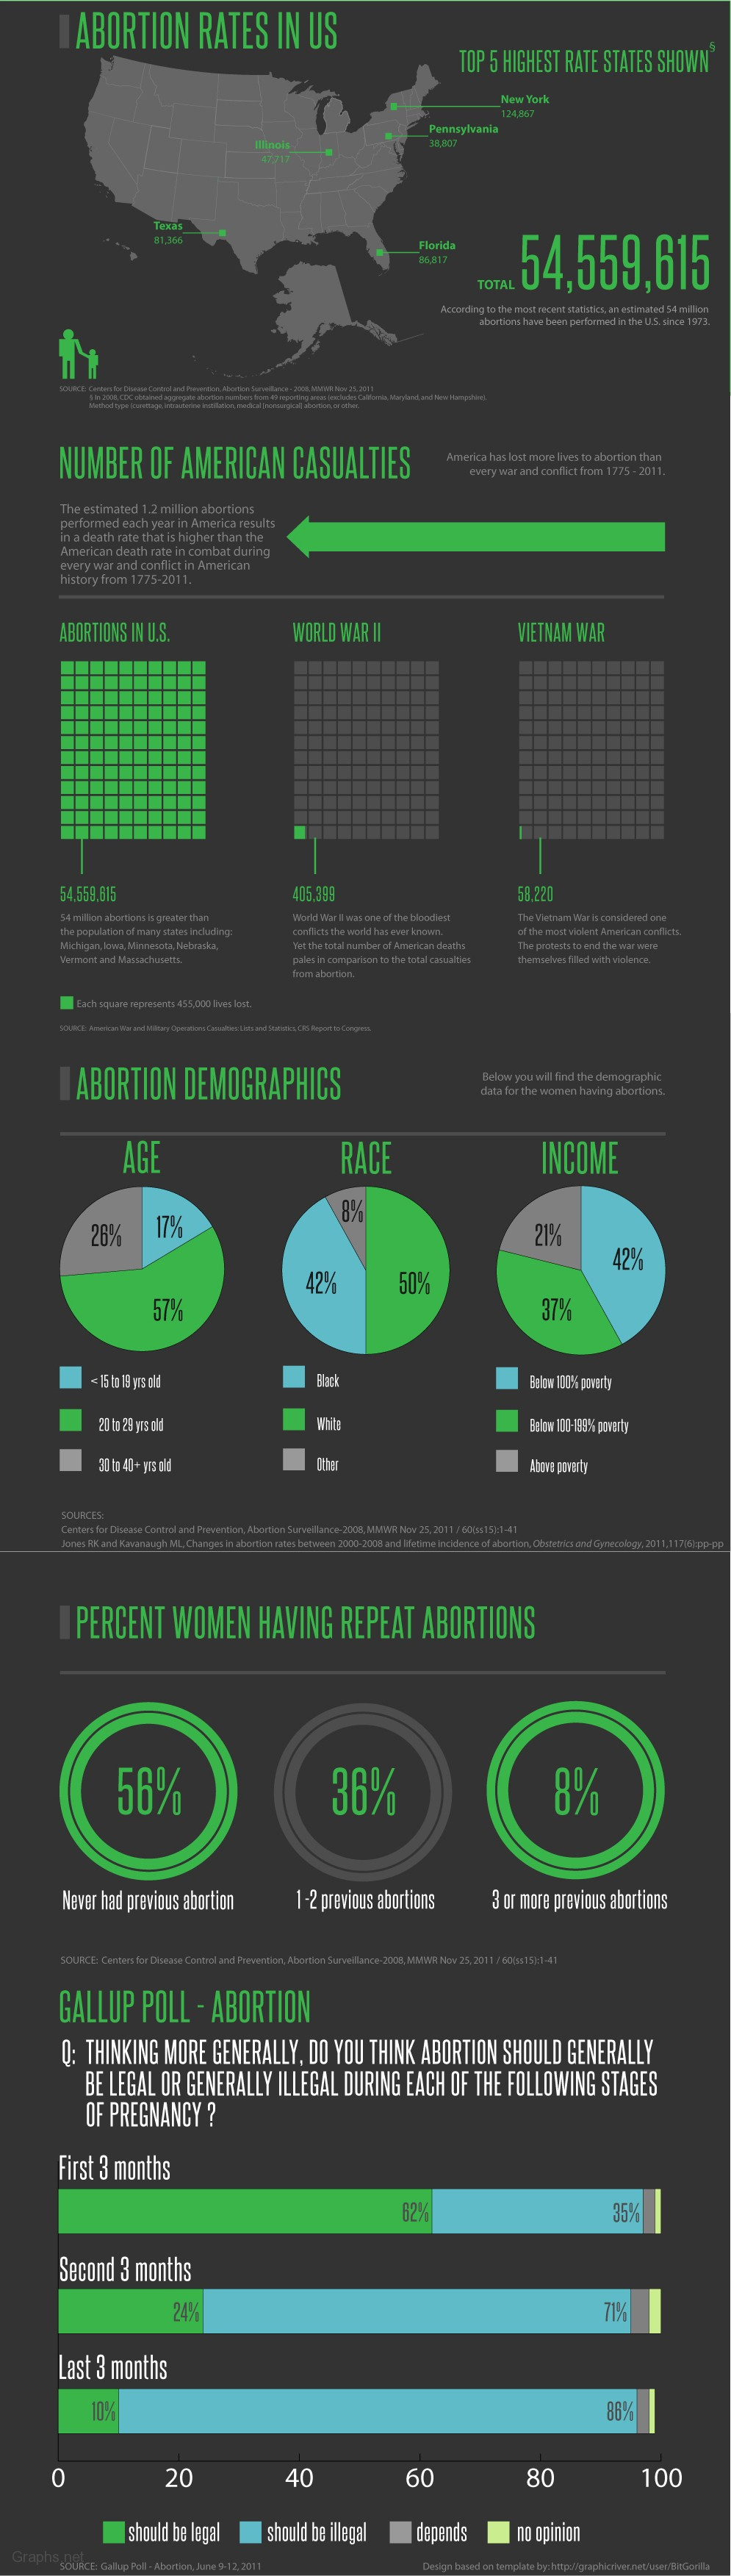 Abortion rates in the US